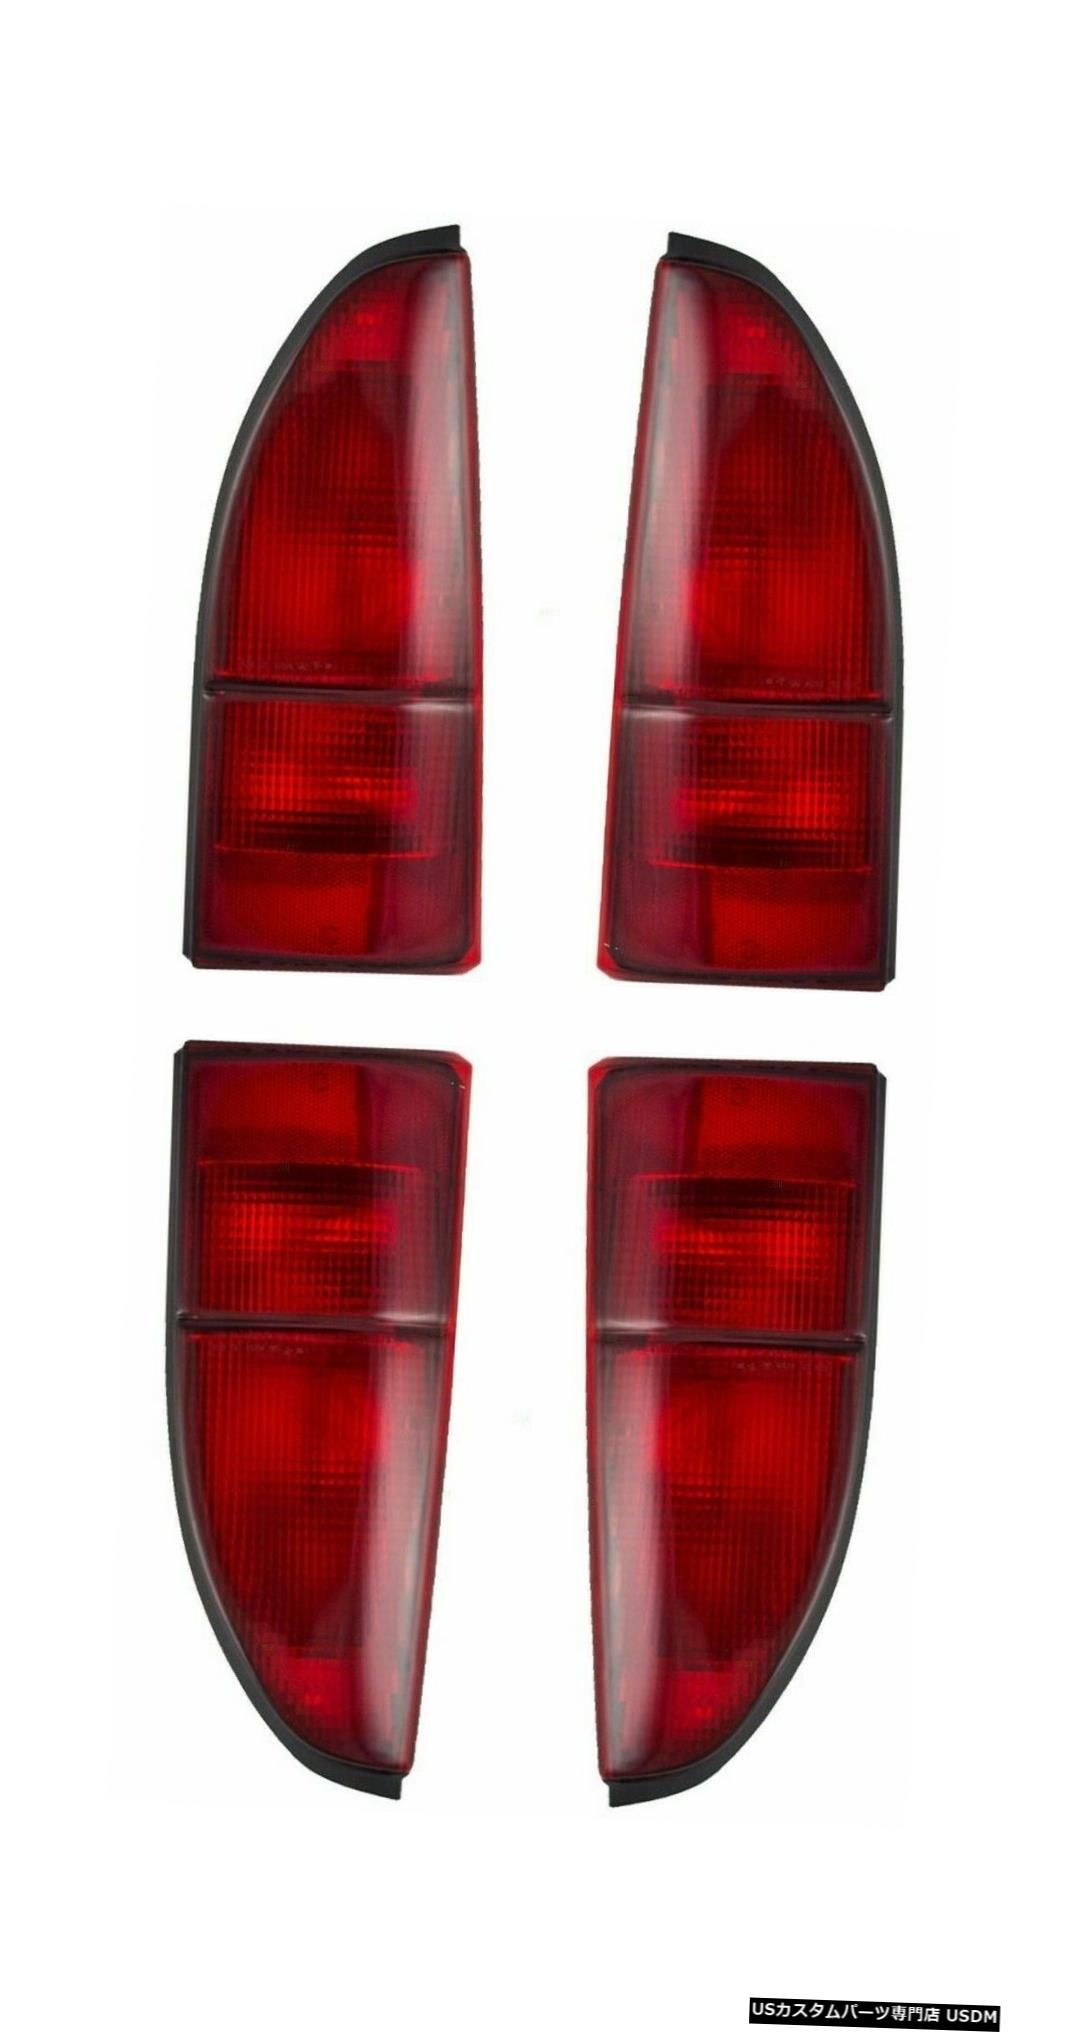 Tail light HOLIDAY RAMBLER NAVIGATOR 2008 2009 TAILLIGHTS TAIL LIGHTS REAR LAMPS 4個セットRV HOLIDAY RAMBLER NAVIGATOR 2008 2009 TAILLIGHTS TAIL LIGHTS REAR LAMPS 4pc set RV